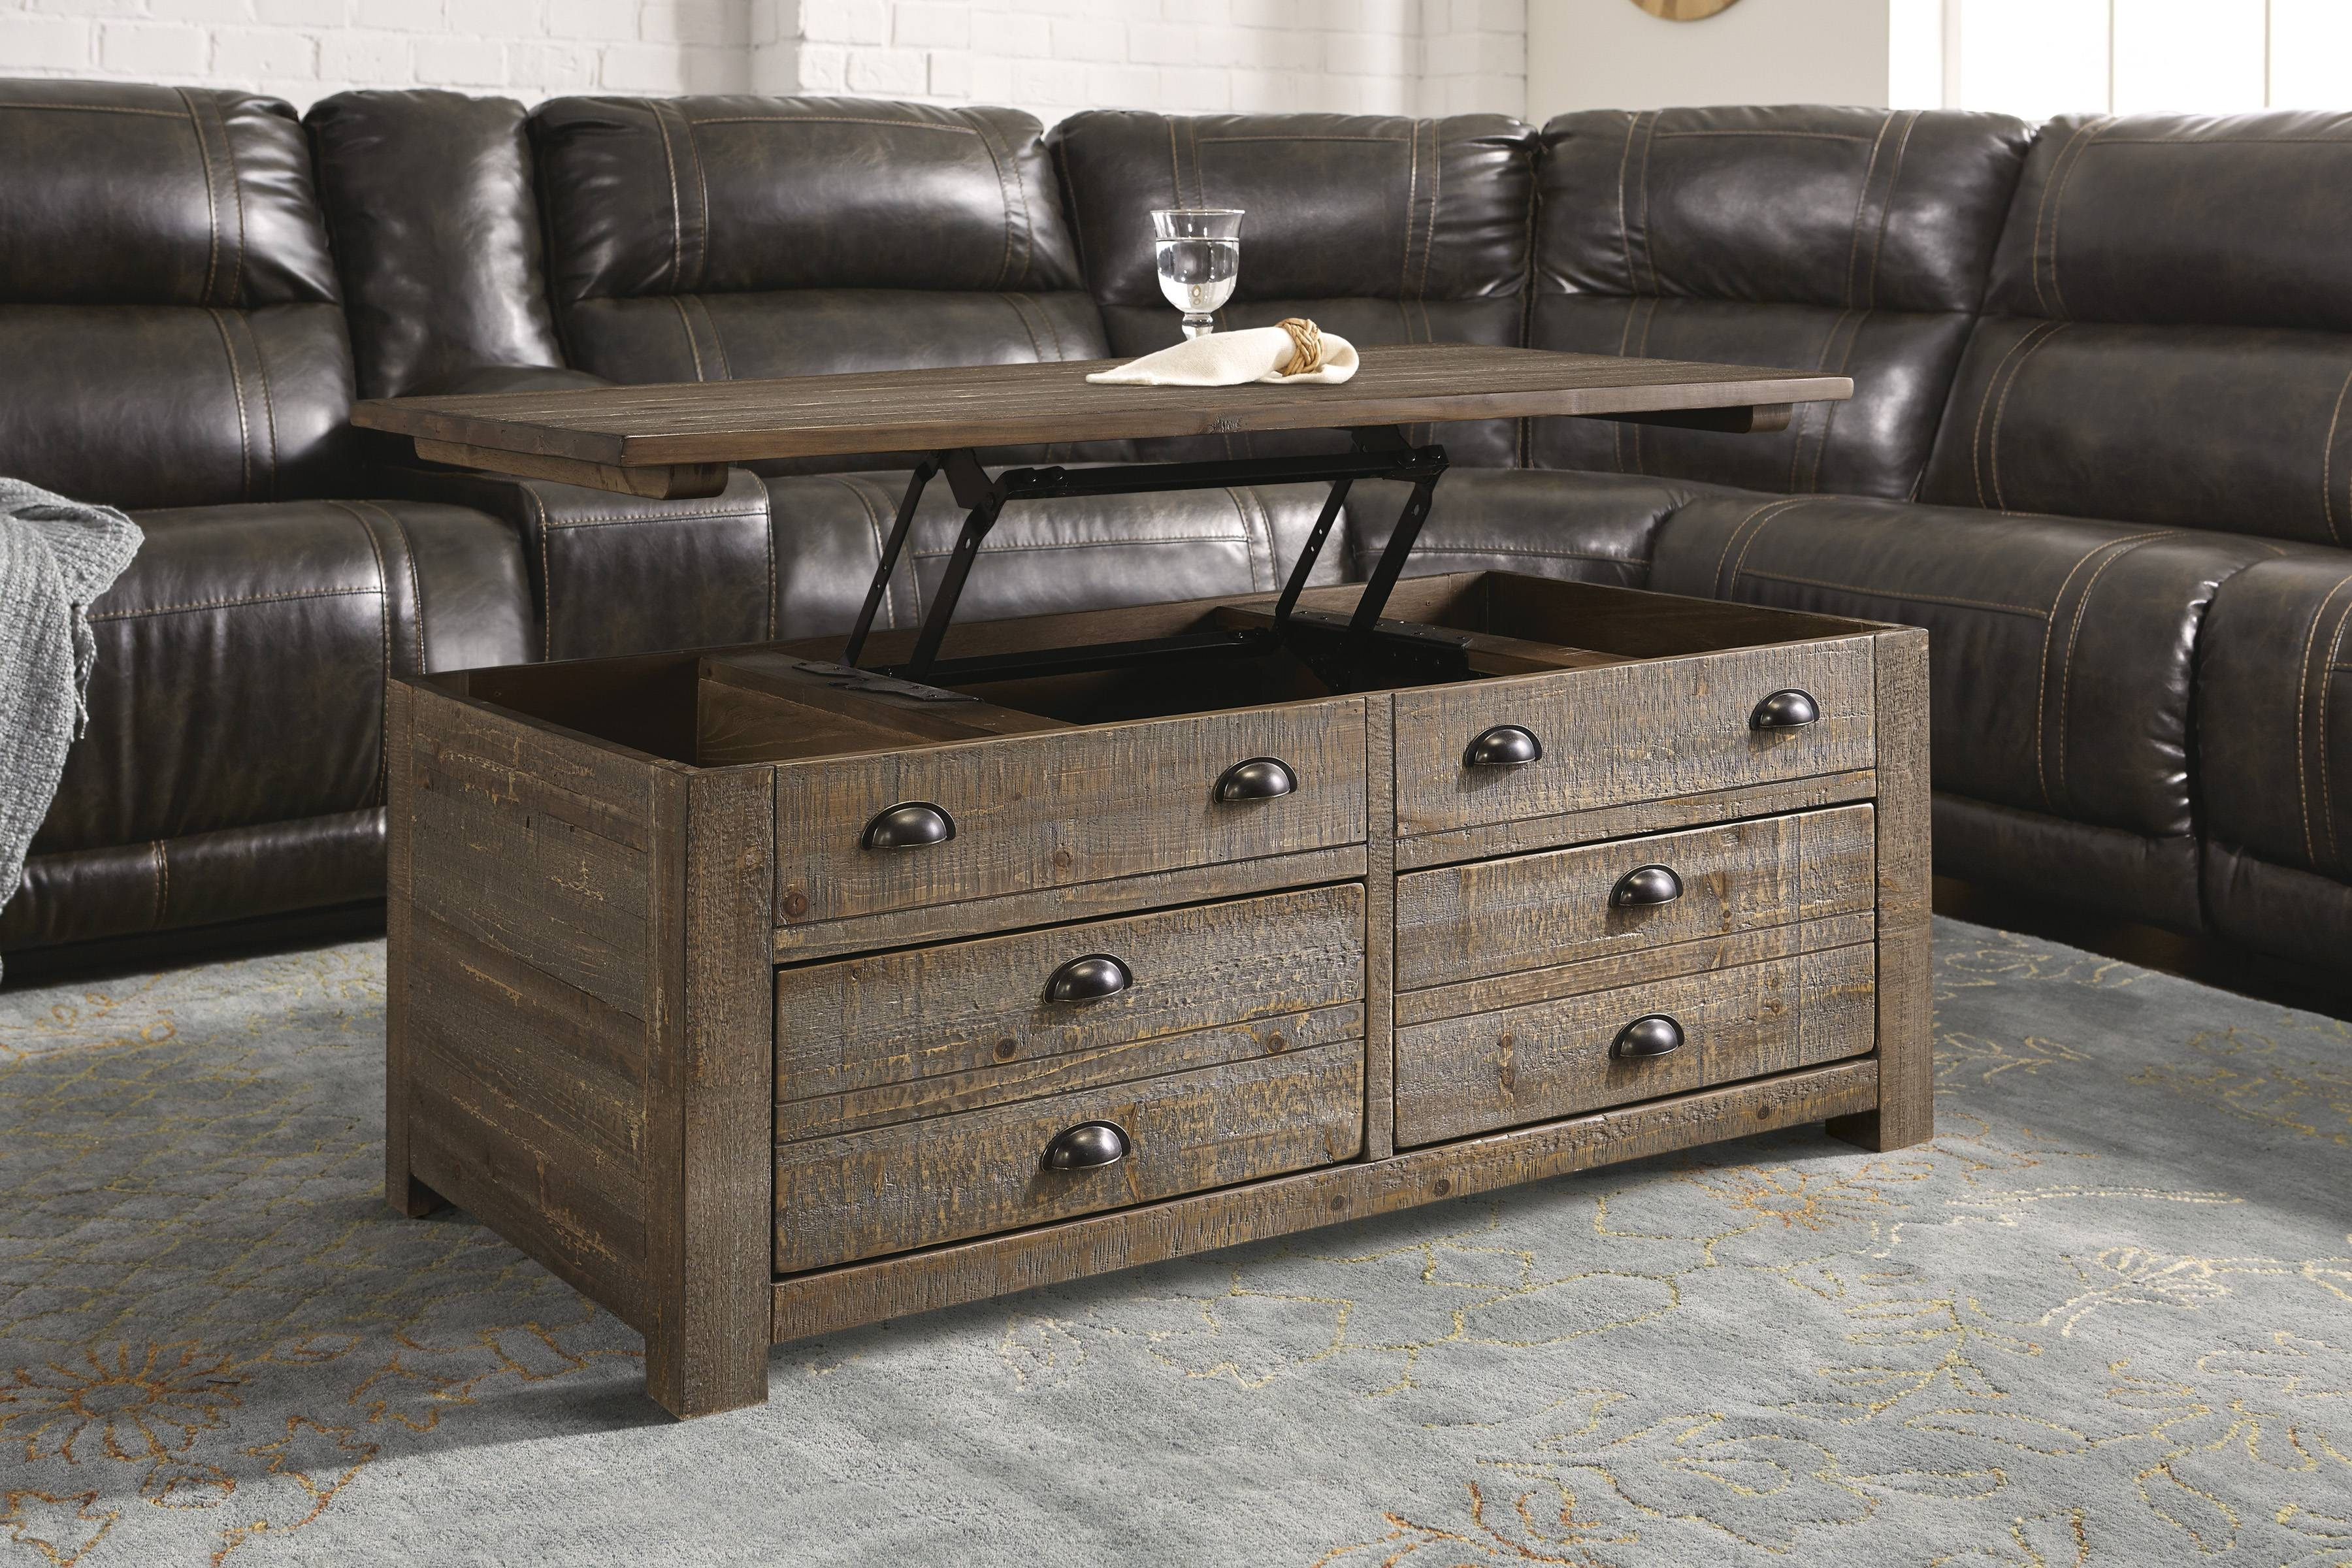 Lift-Top-Coffee-Tables pertaining to Lift Top Coffee Table Furniture (Image 20 of 30)